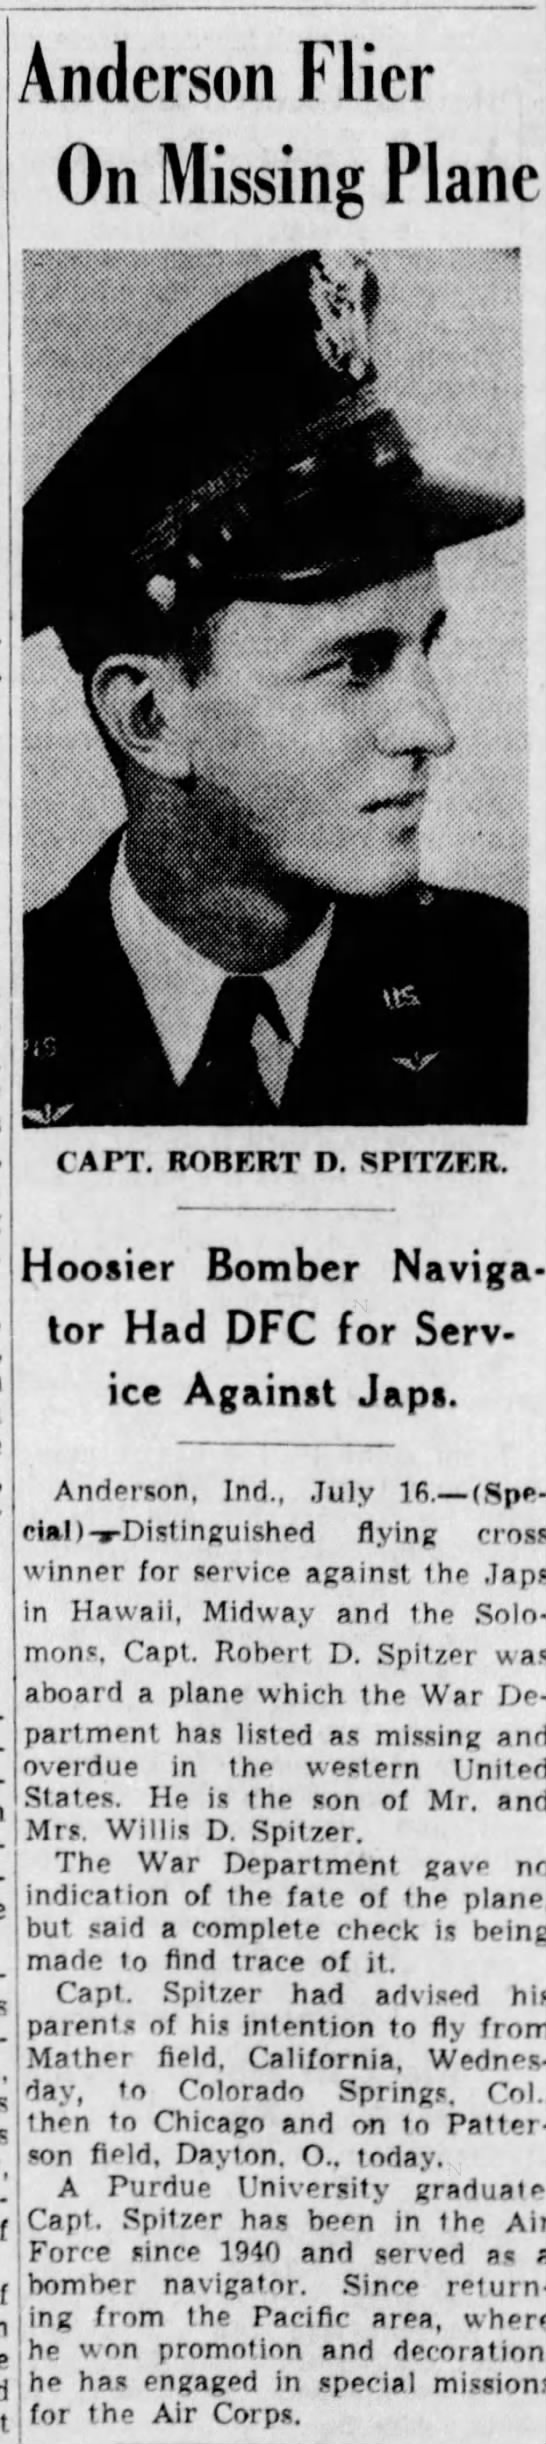 1943-07-17 The Indianapolis Star (Indiana) Page 3